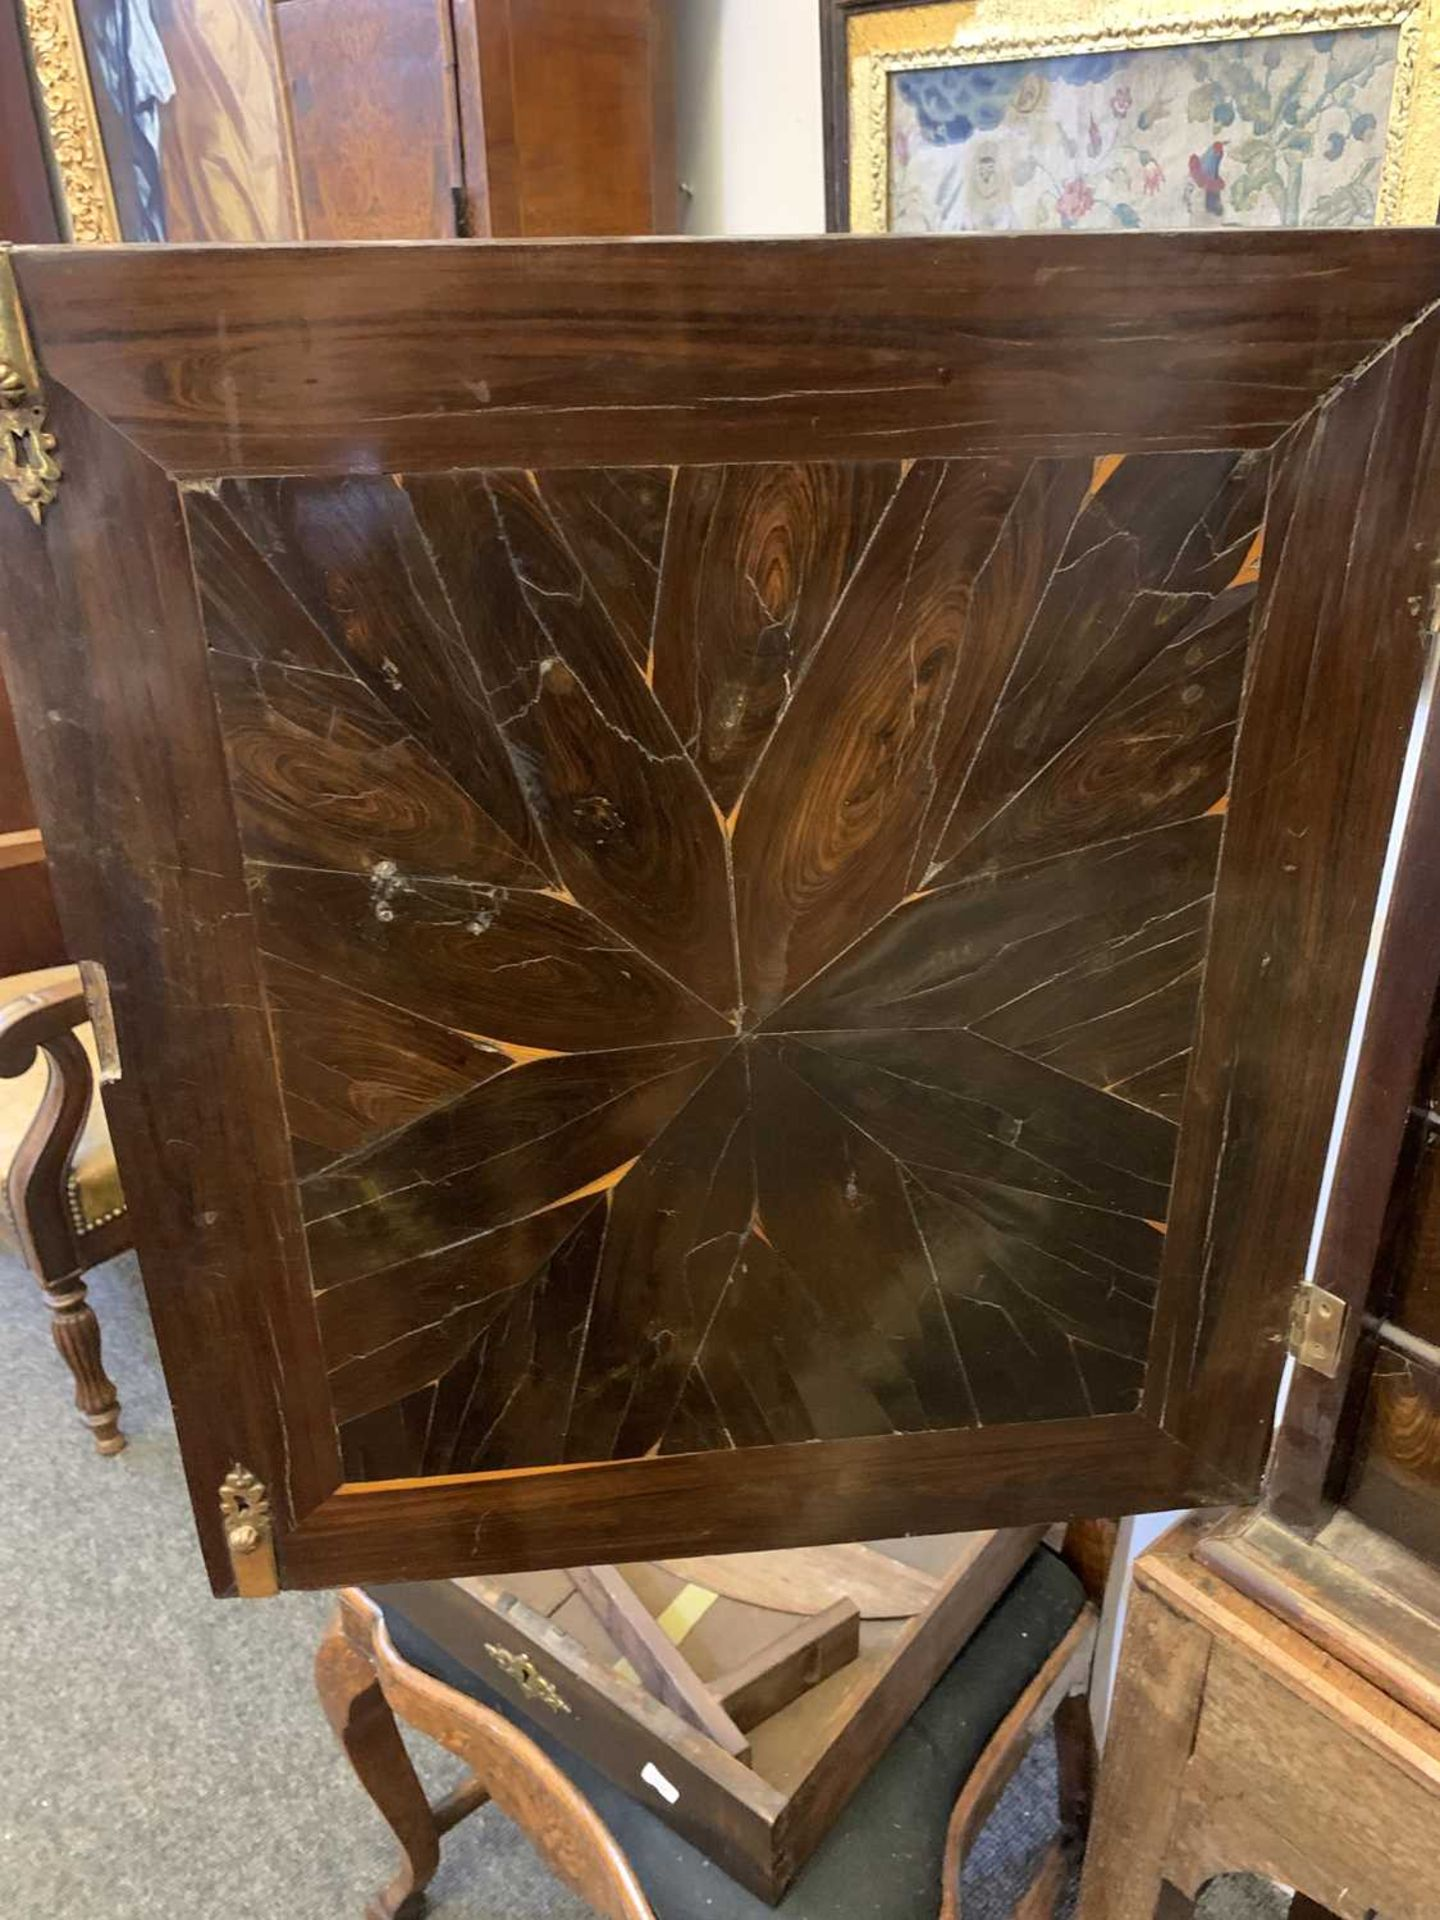 A Queen Anne cocus wood cabinet, - Image 18 of 42